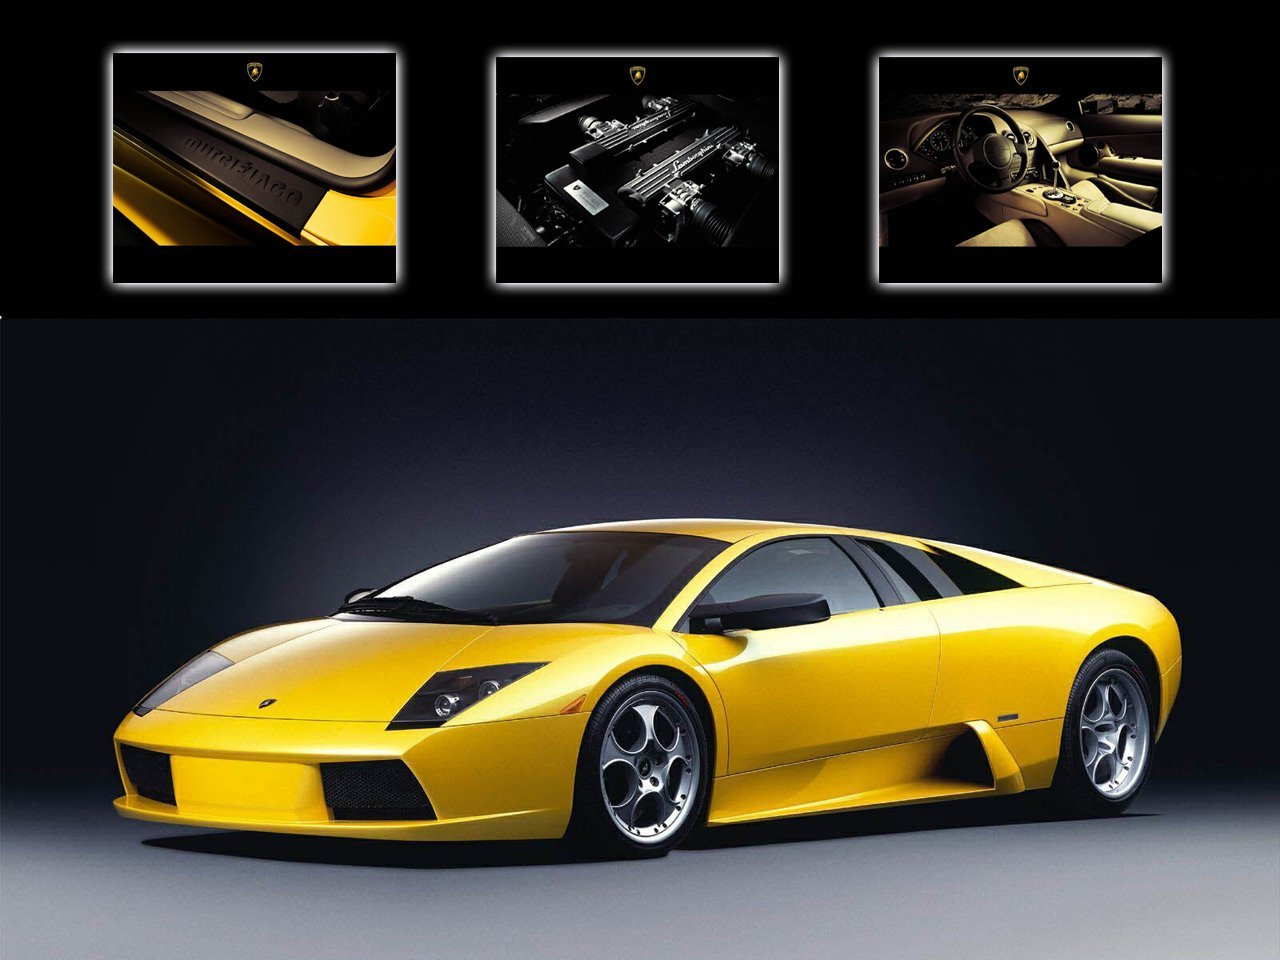 New Sports Speedicars Lamborghini Cars Images On This Month